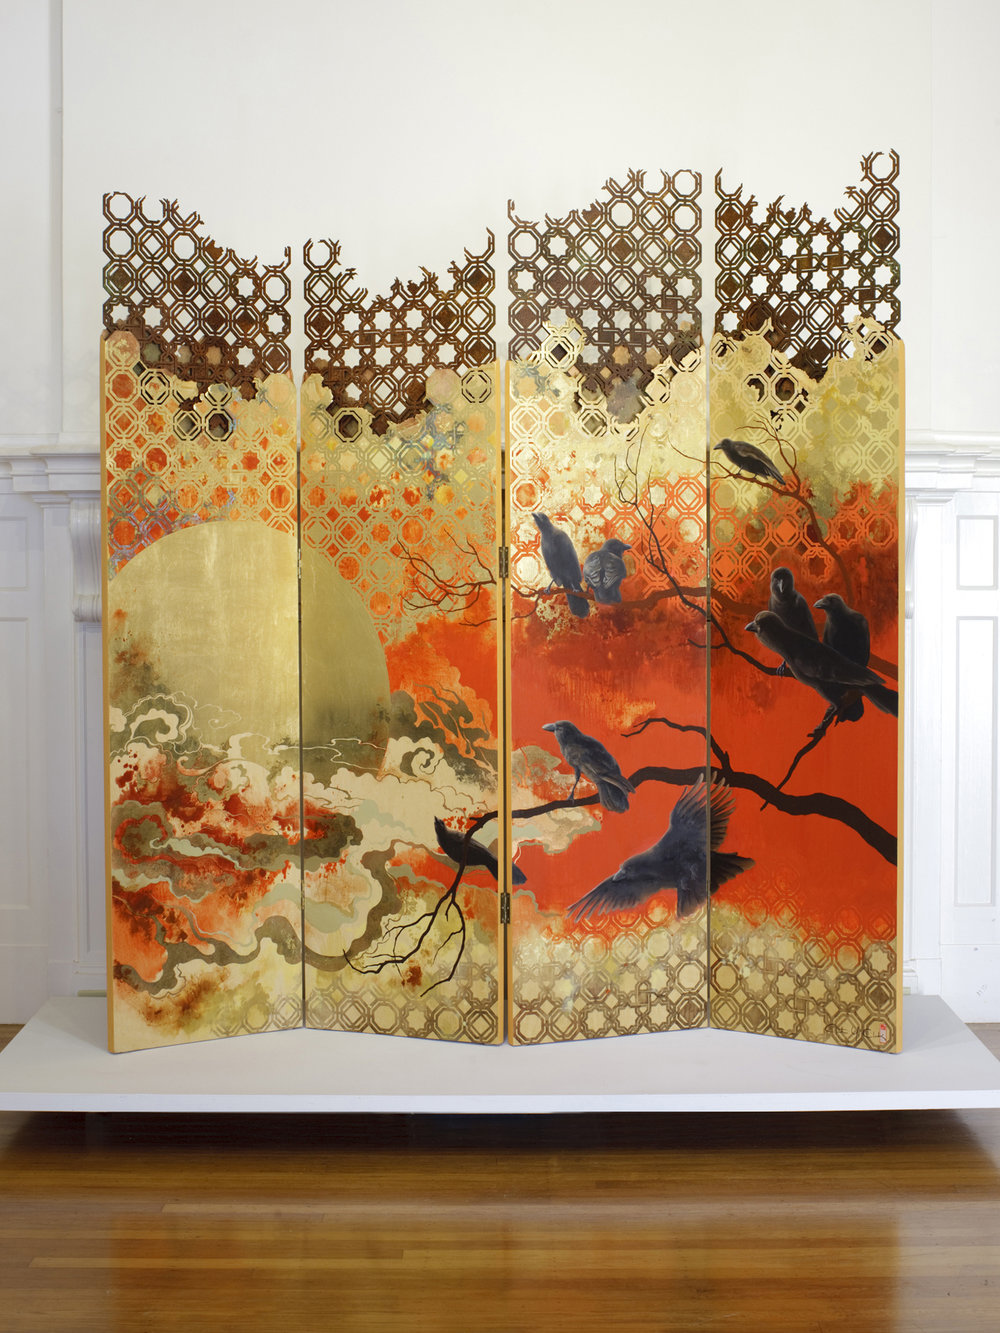 ʻAlala: Rise with the Sun   oil, acrylic, gold leaf, wood stain on panel with laser-cut steel  2011  72 x 72.5 in